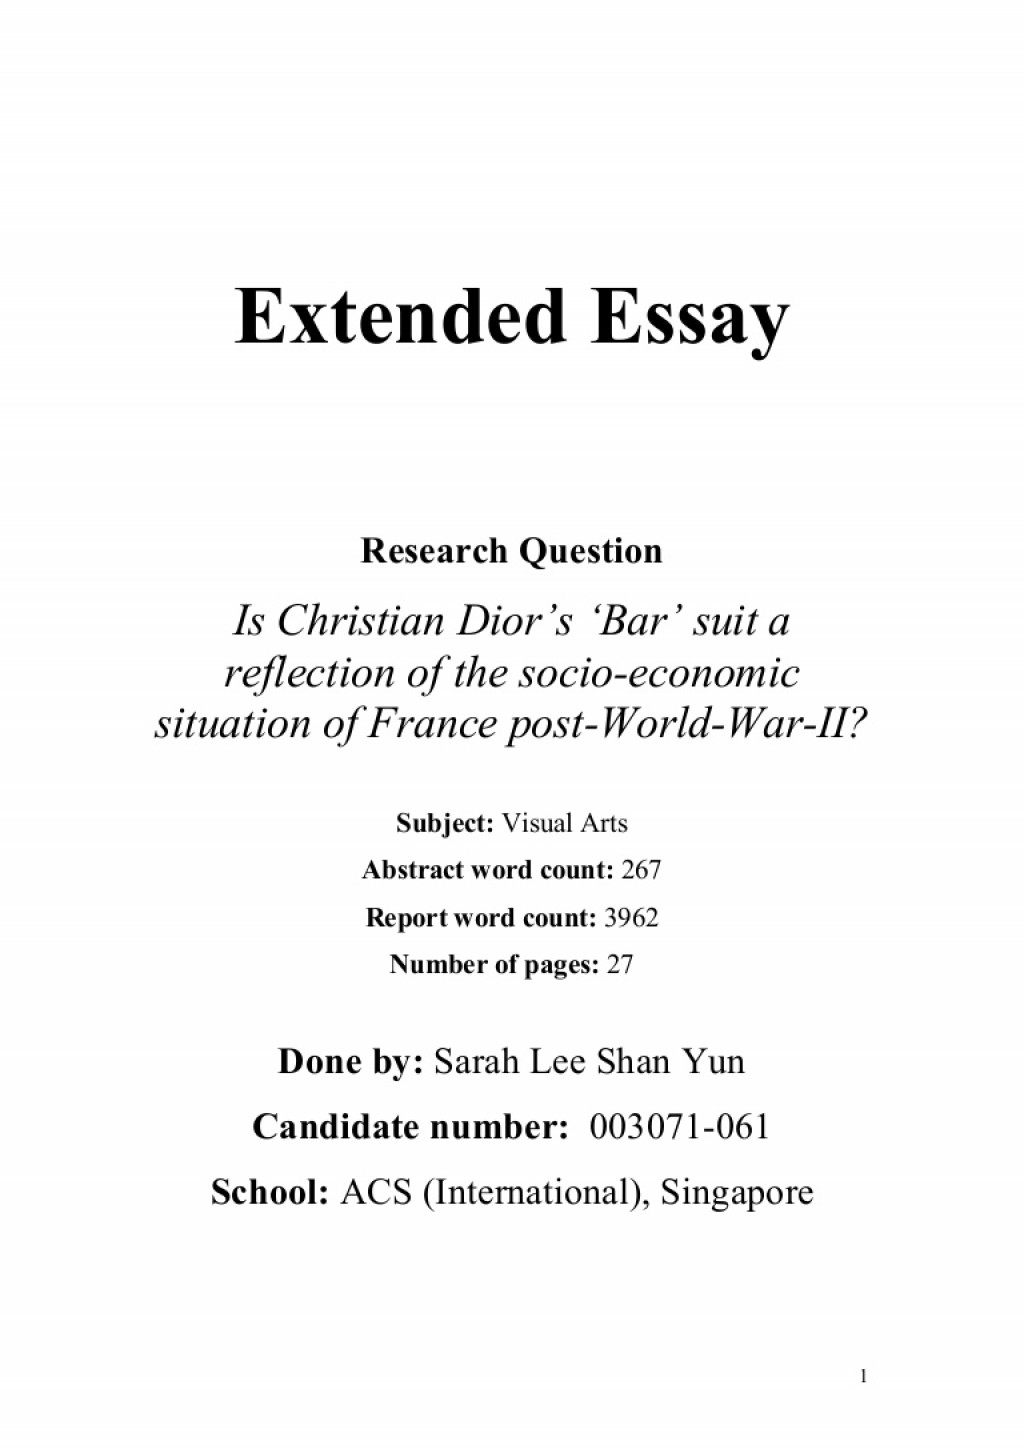 025 Mexican Immigration Topics Research Paper 1650077541 Extended Essay Abstract Striking Large